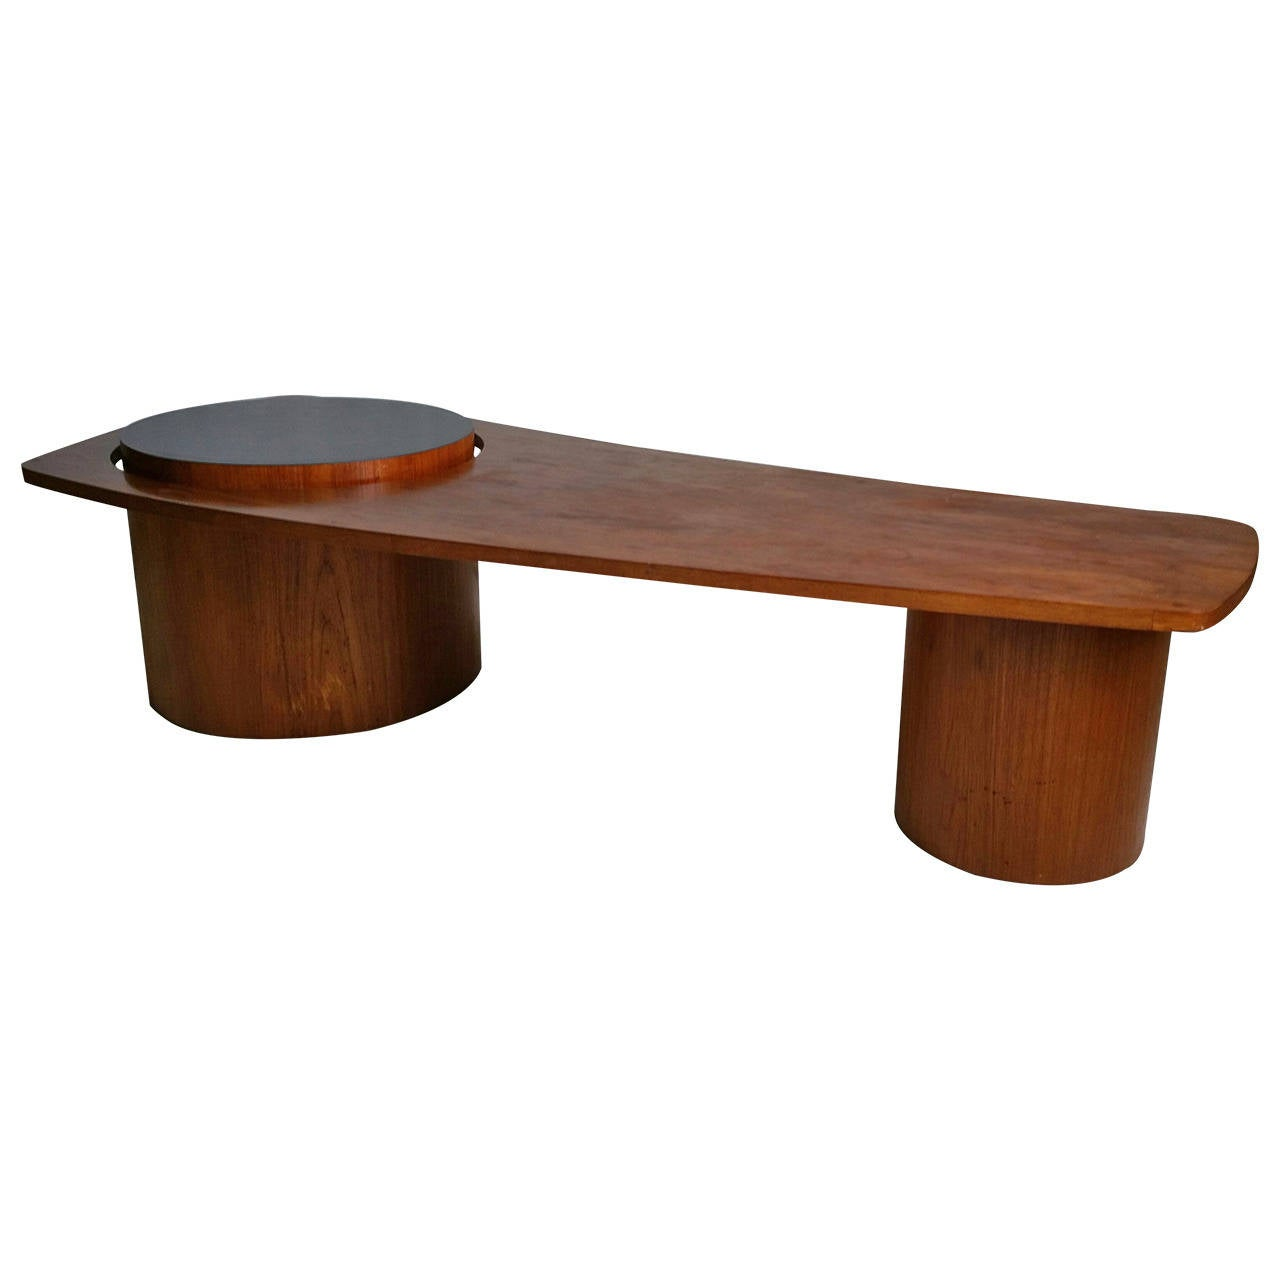 Modern Teak Coffee Table By Rs Associates Designed For Expo 1967 For Sale At 1stdibs